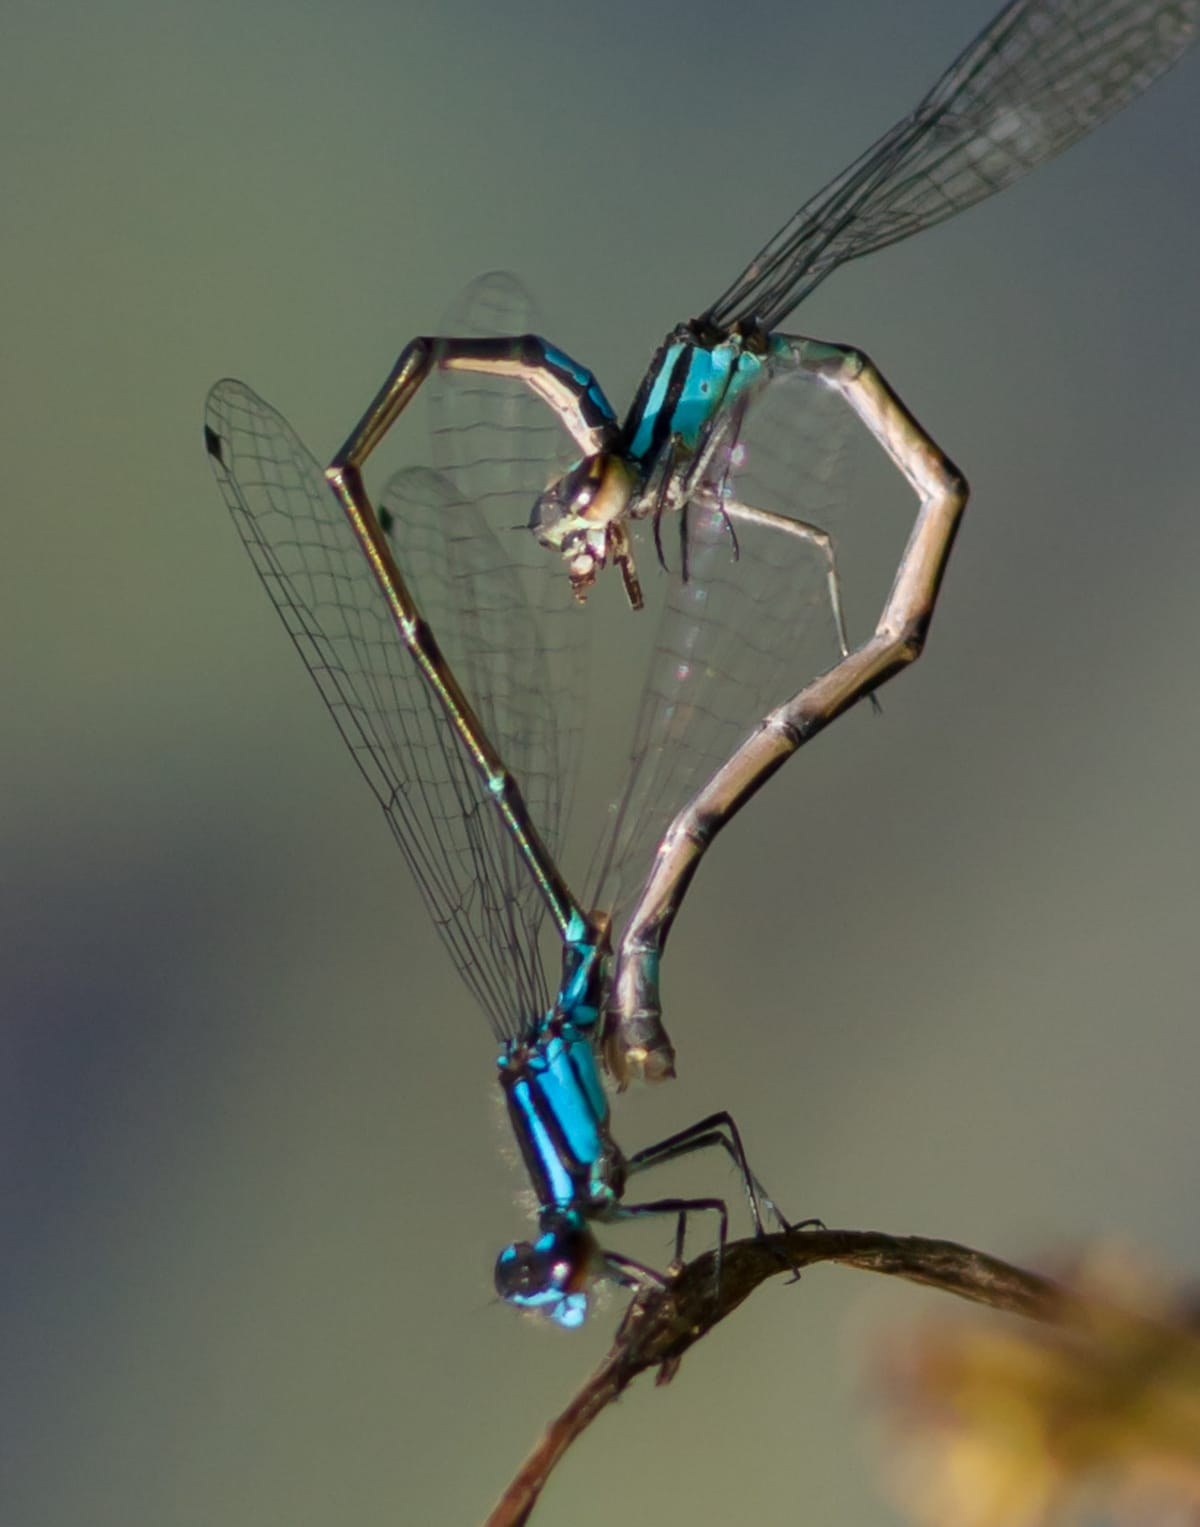 Two Dragonflies Form a Heart